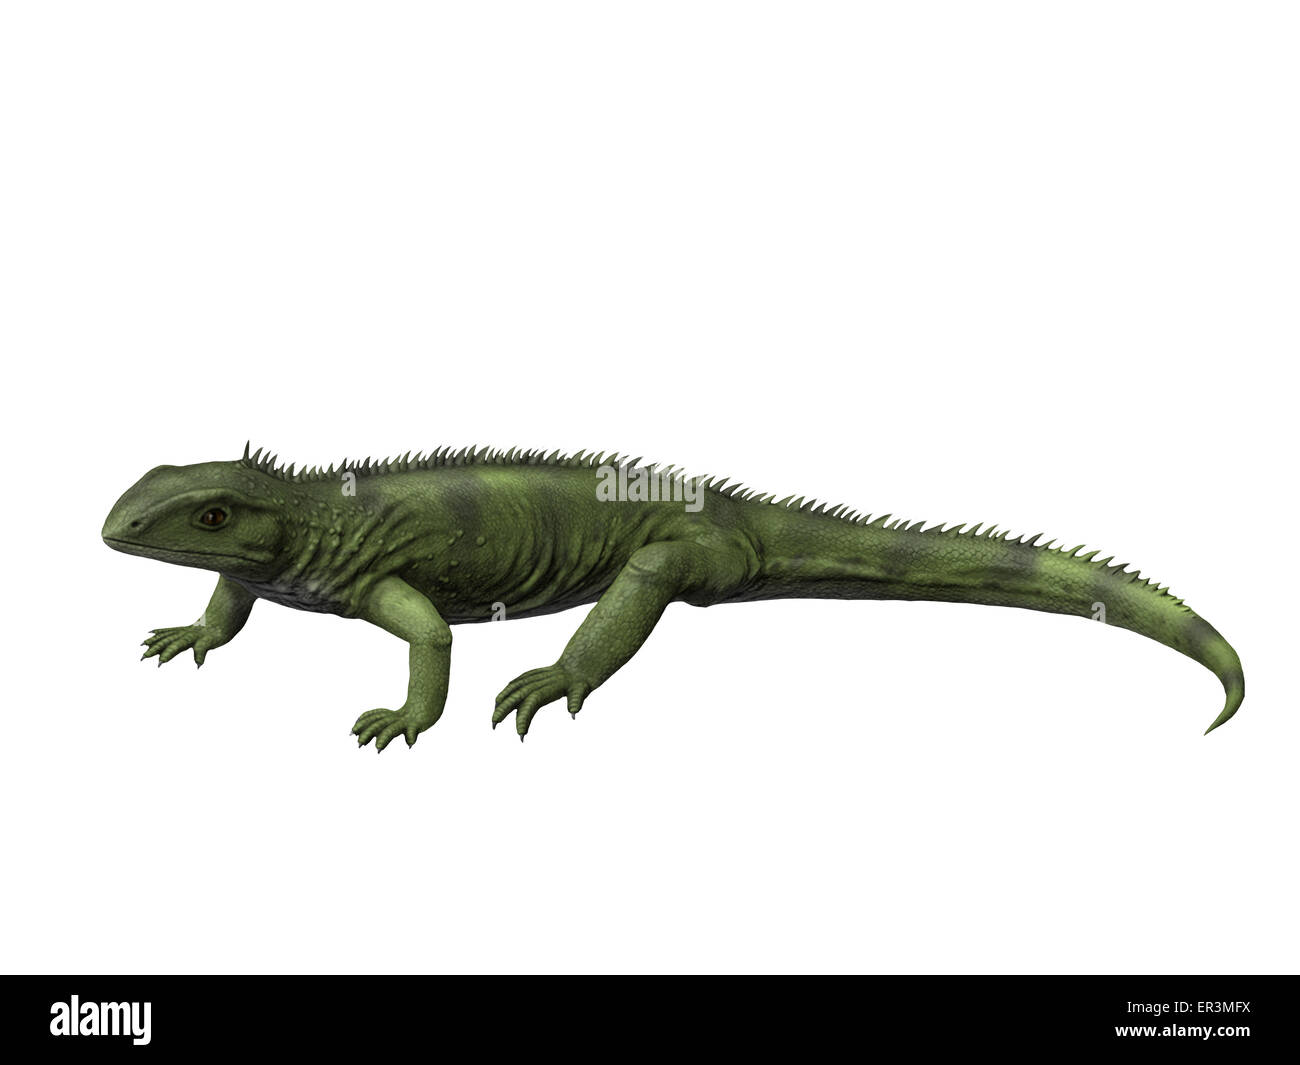 Gephyrosaurus is an extinct Rhynchocephalian from the Early Jurassic period of Wales. - Stock Image